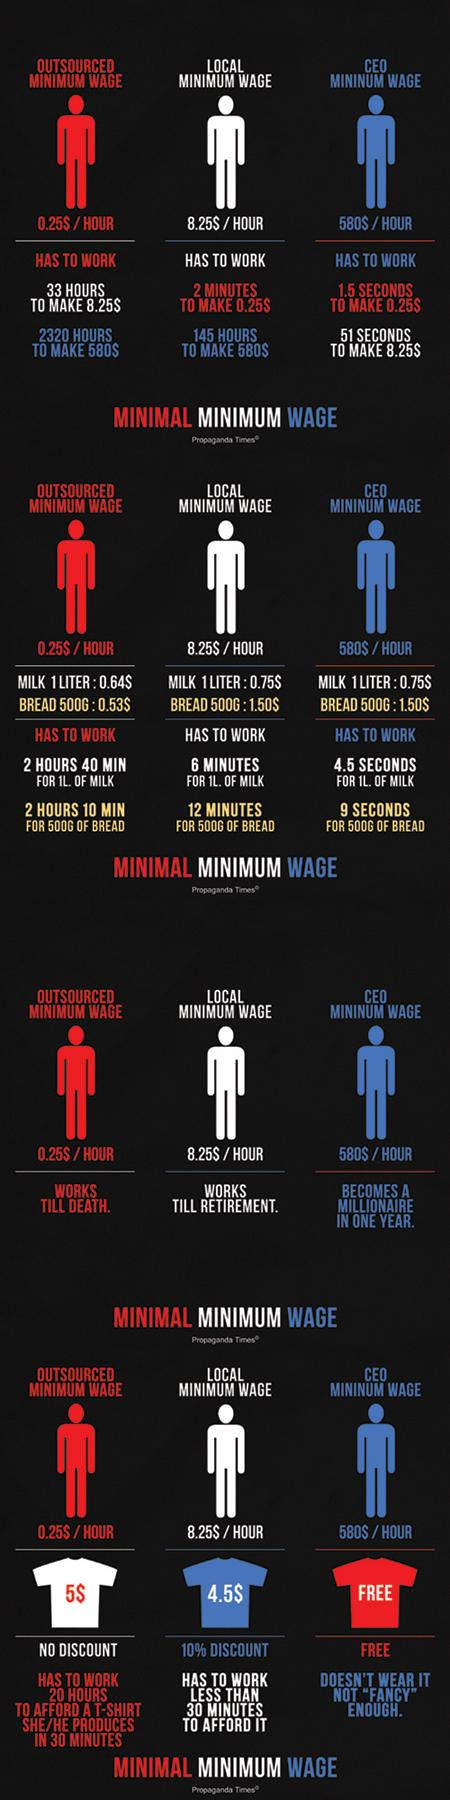 """This pisses me off, """"How Many Seconds Does It Take A CEO To Earn An Hour's Worth Of Minimum Wage?"""""""